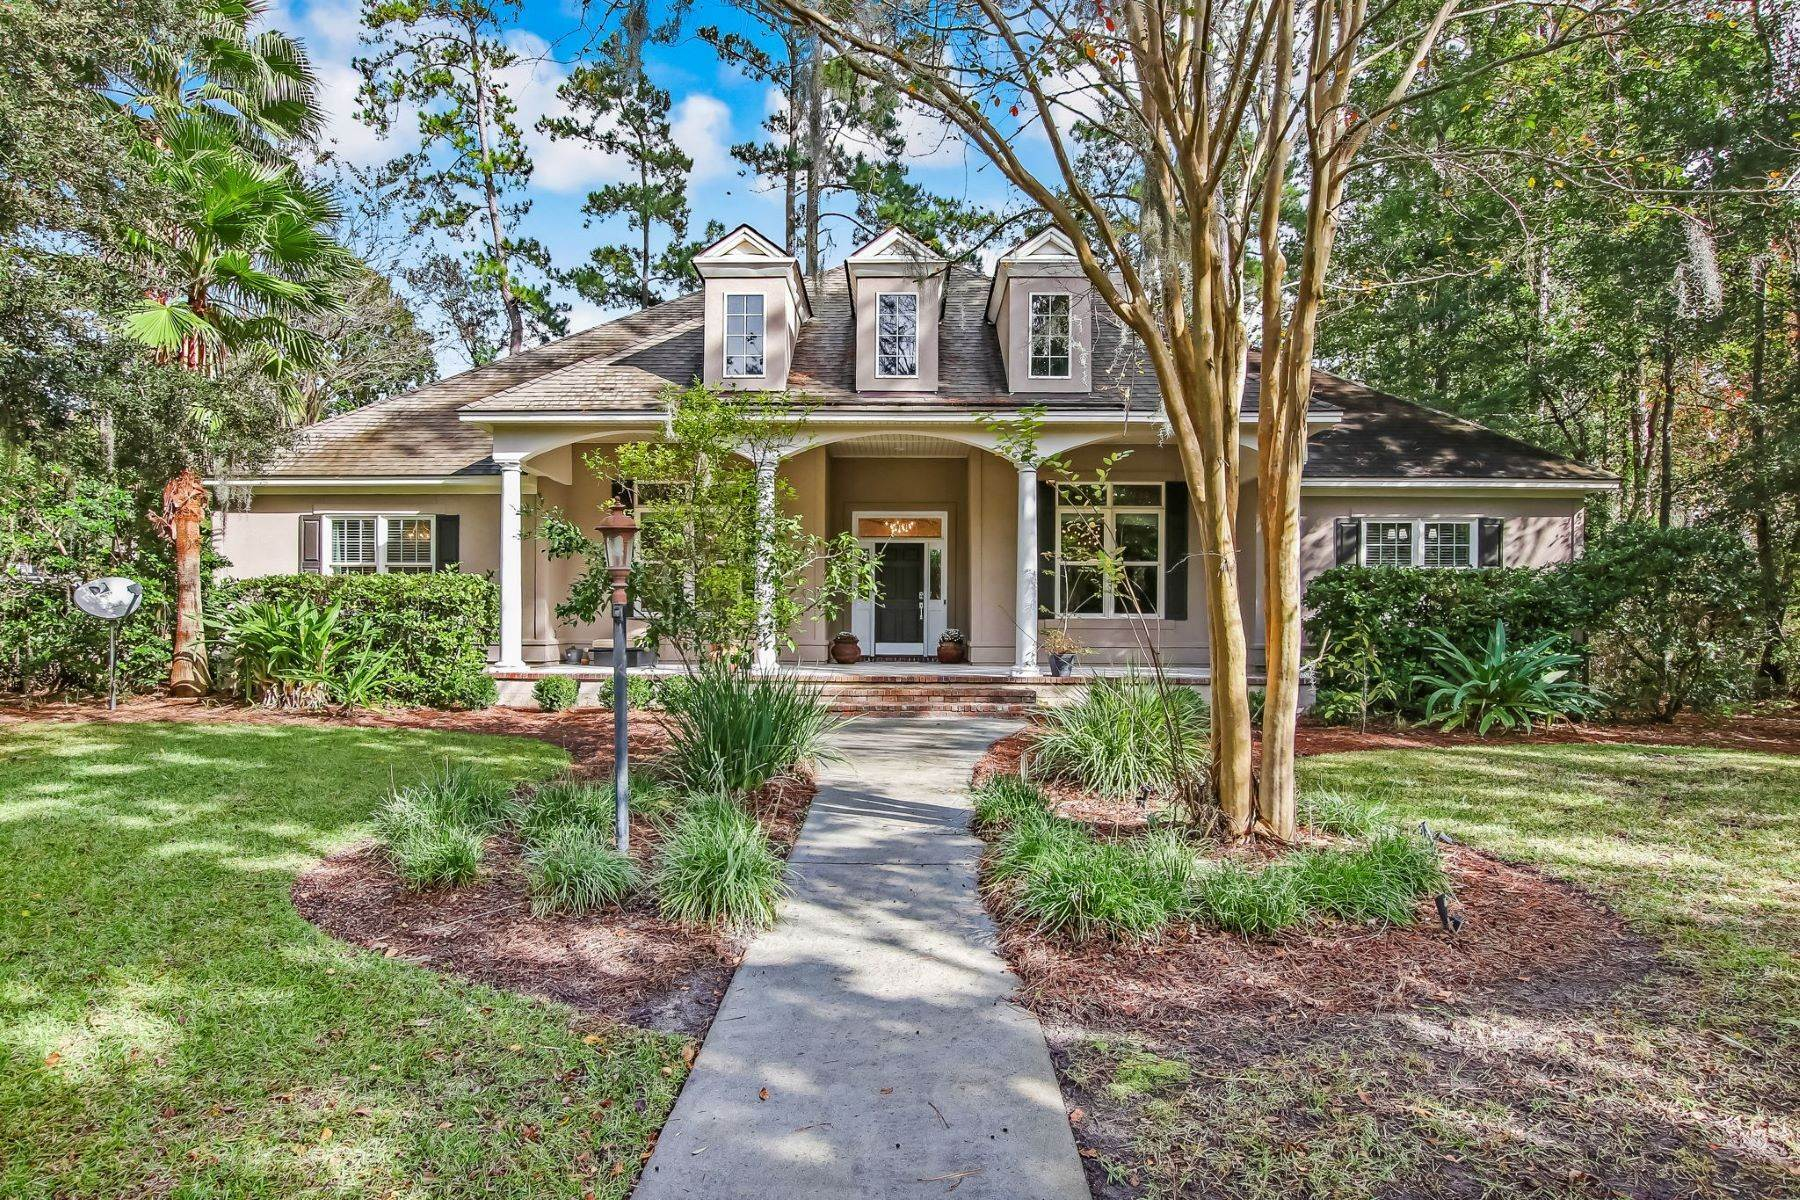 Single Family Homes for Sale at Elegant Lowcountry Home on Dutch Island 102 Hedge Nettle Crossing Savannah, Georgia 31406 United States